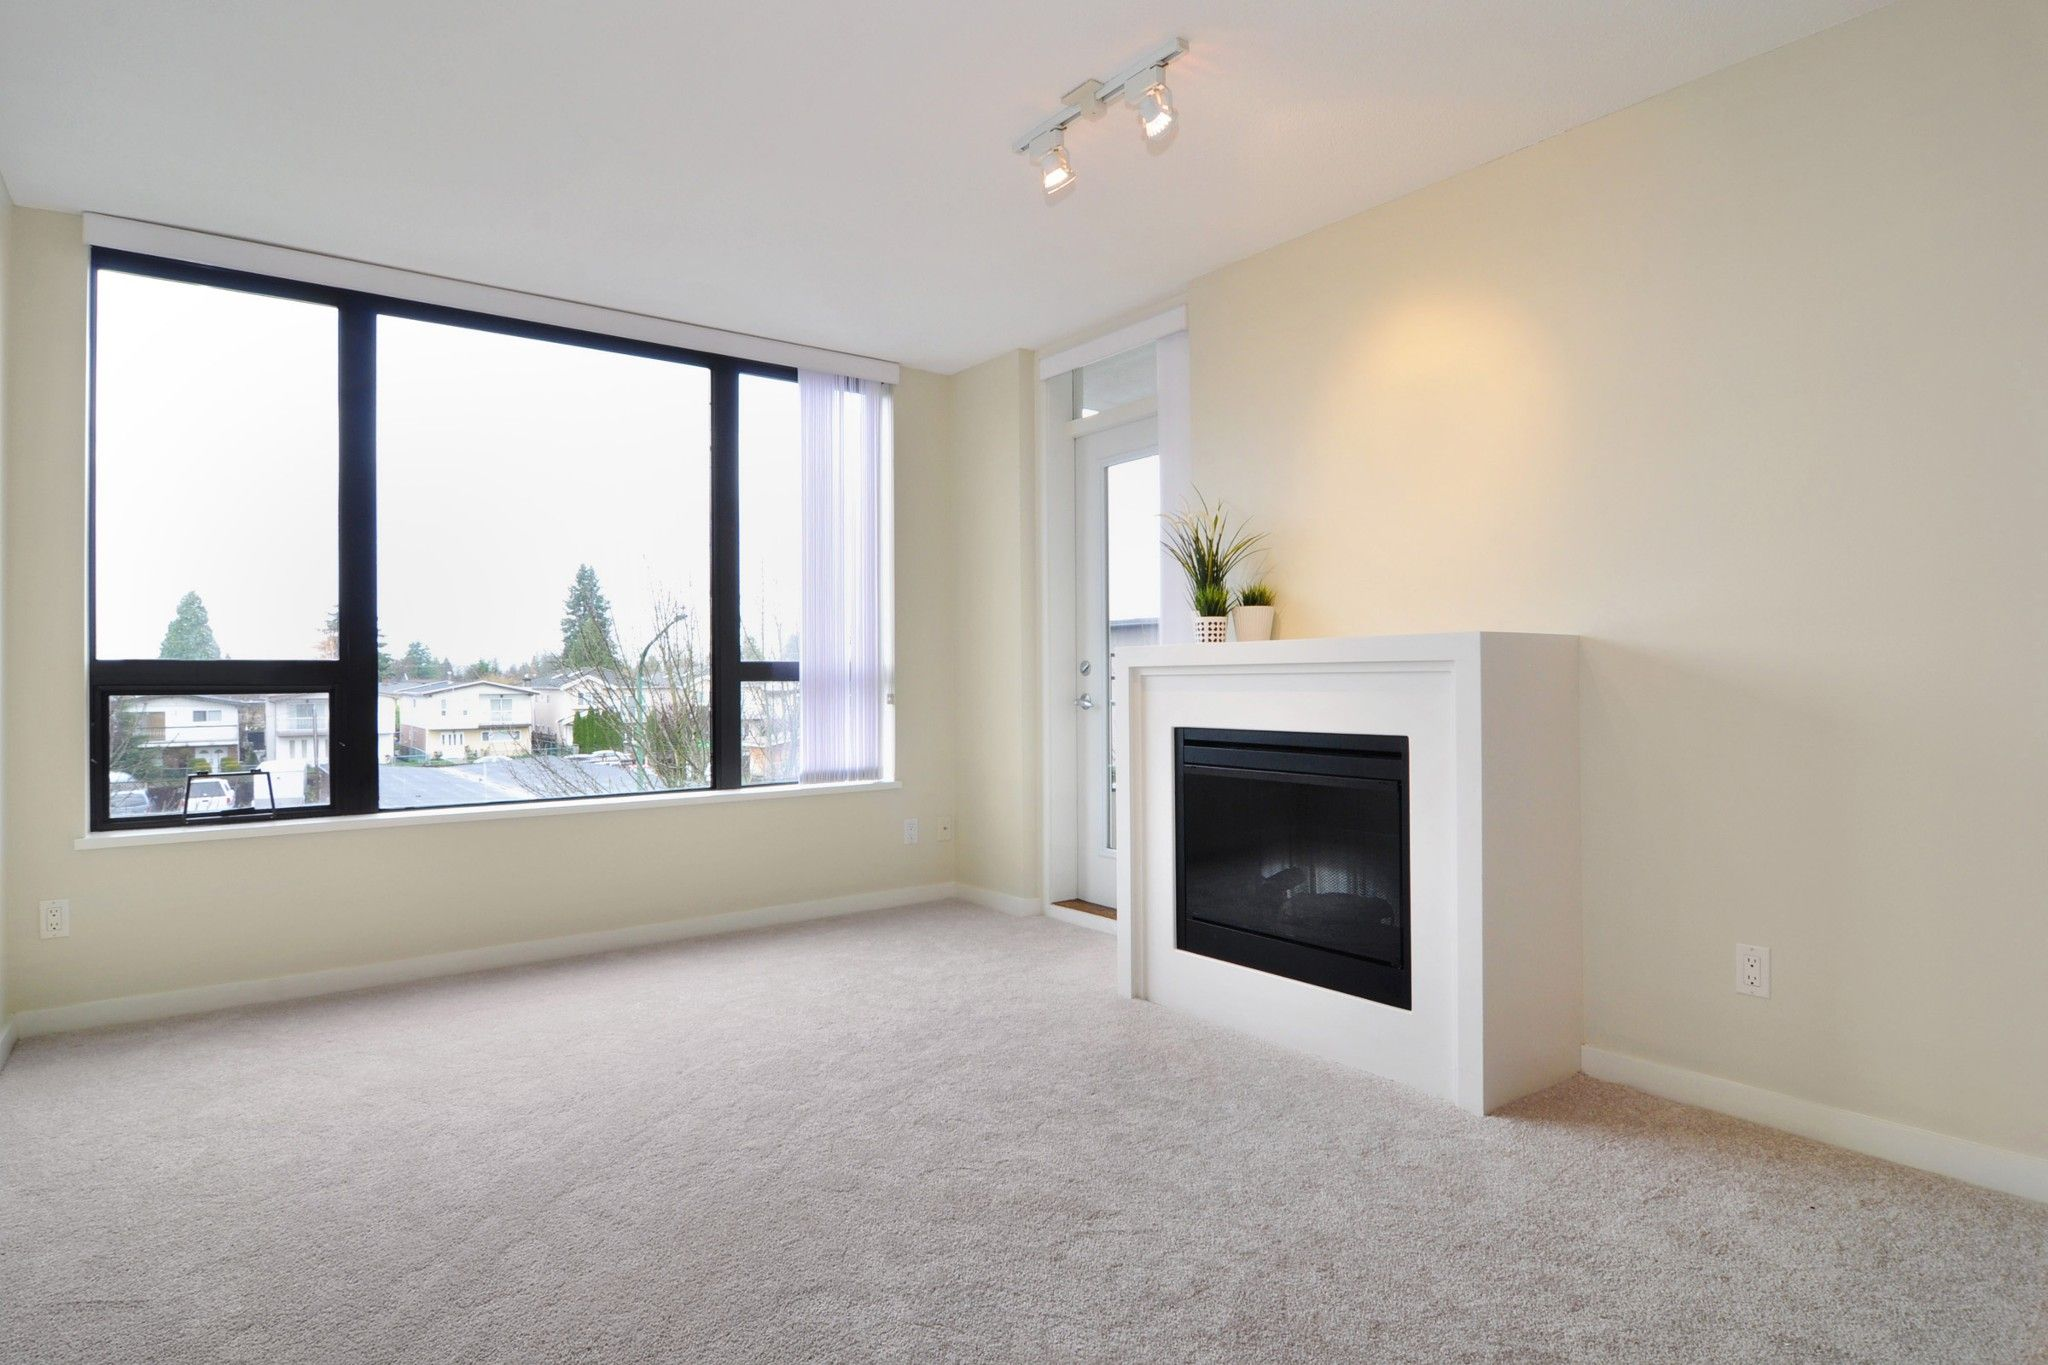 """Photo 2: Photos: 312 7138 COLLIER Street in Burnaby: Highgate Condo for sale in """"STANDFORD HOUSE"""" (Burnaby South)  : MLS®# R2224760"""